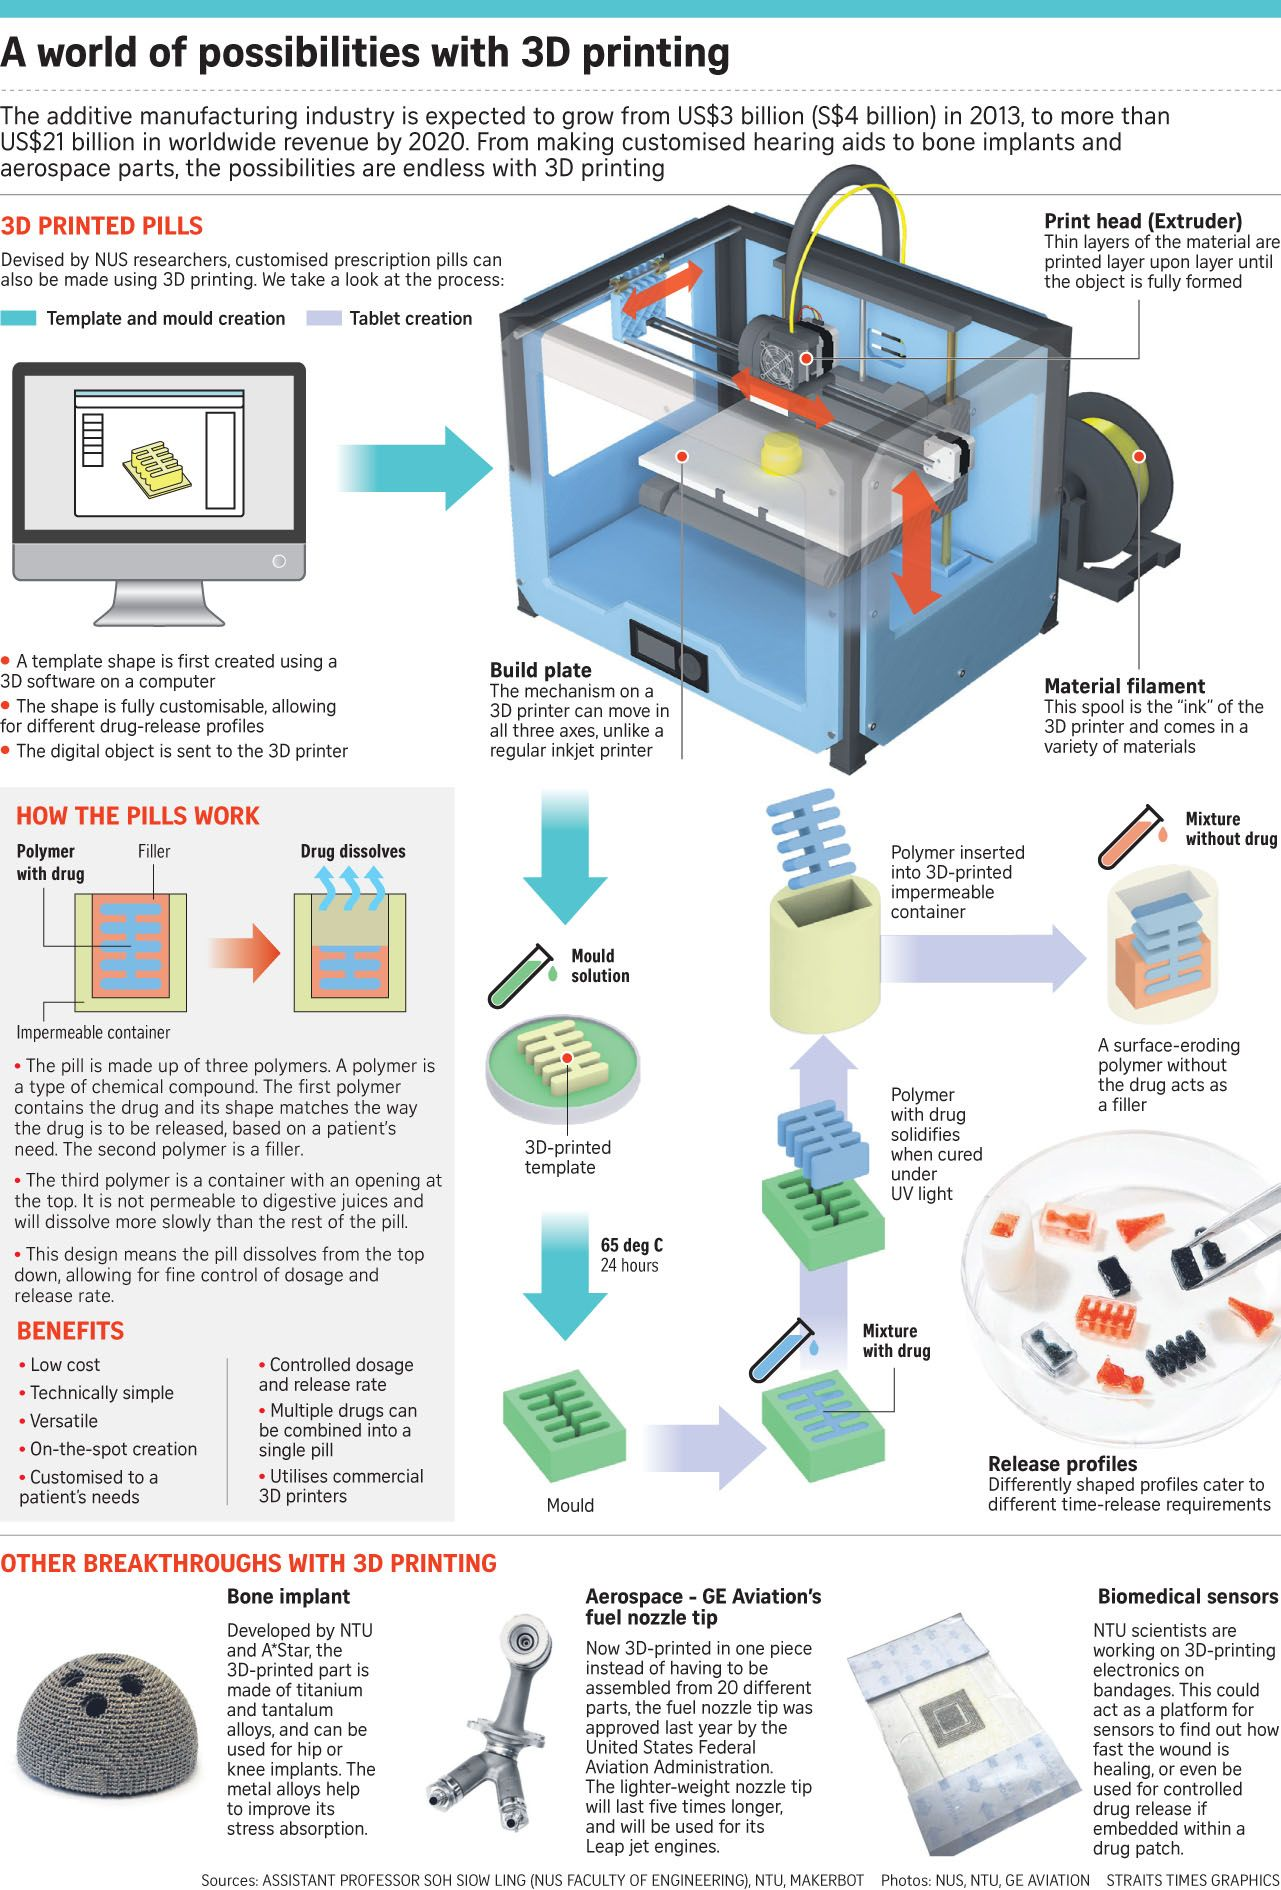 Engineers on 3D printing and how data analytics boosts